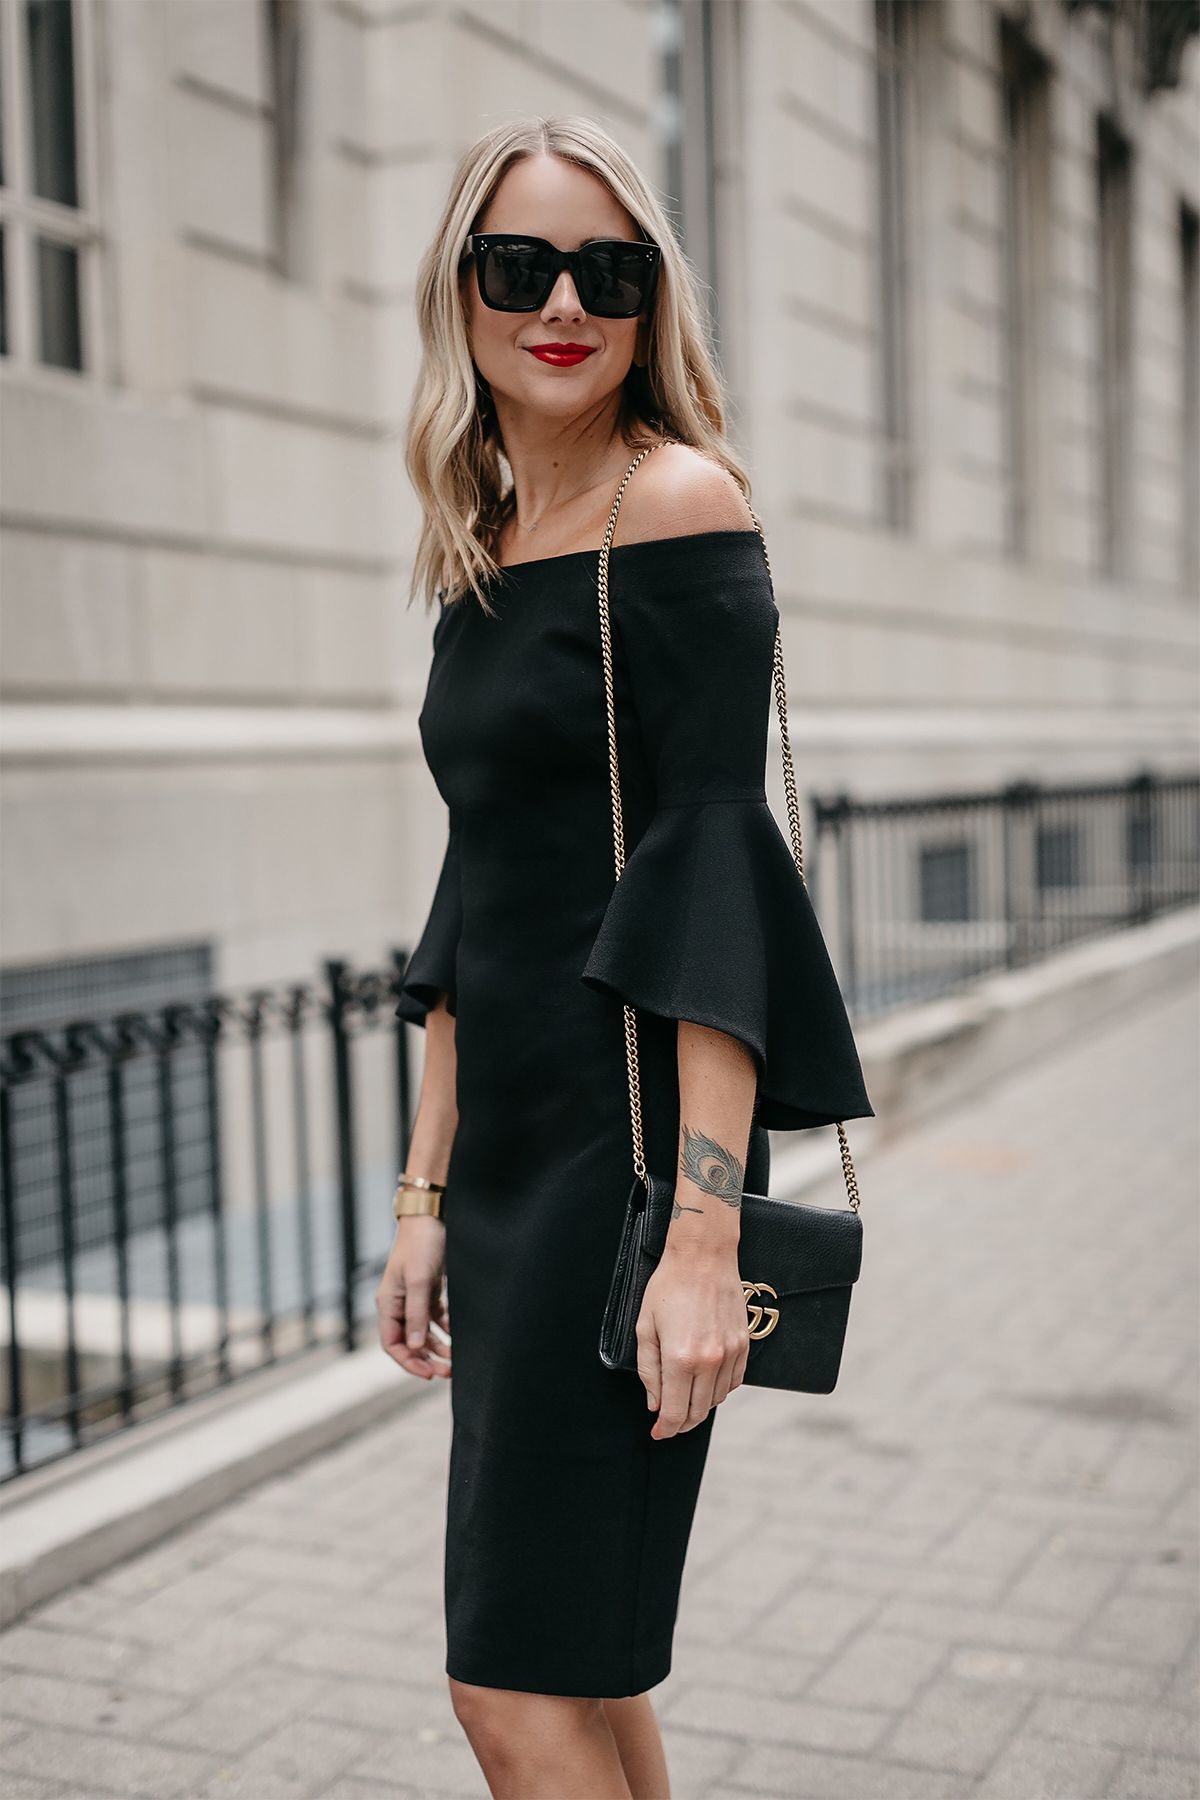 Blonde Woman Wearing Off The Shoulder Black Holiday Dress Gucci Marmont Handbag Fashion Jackson